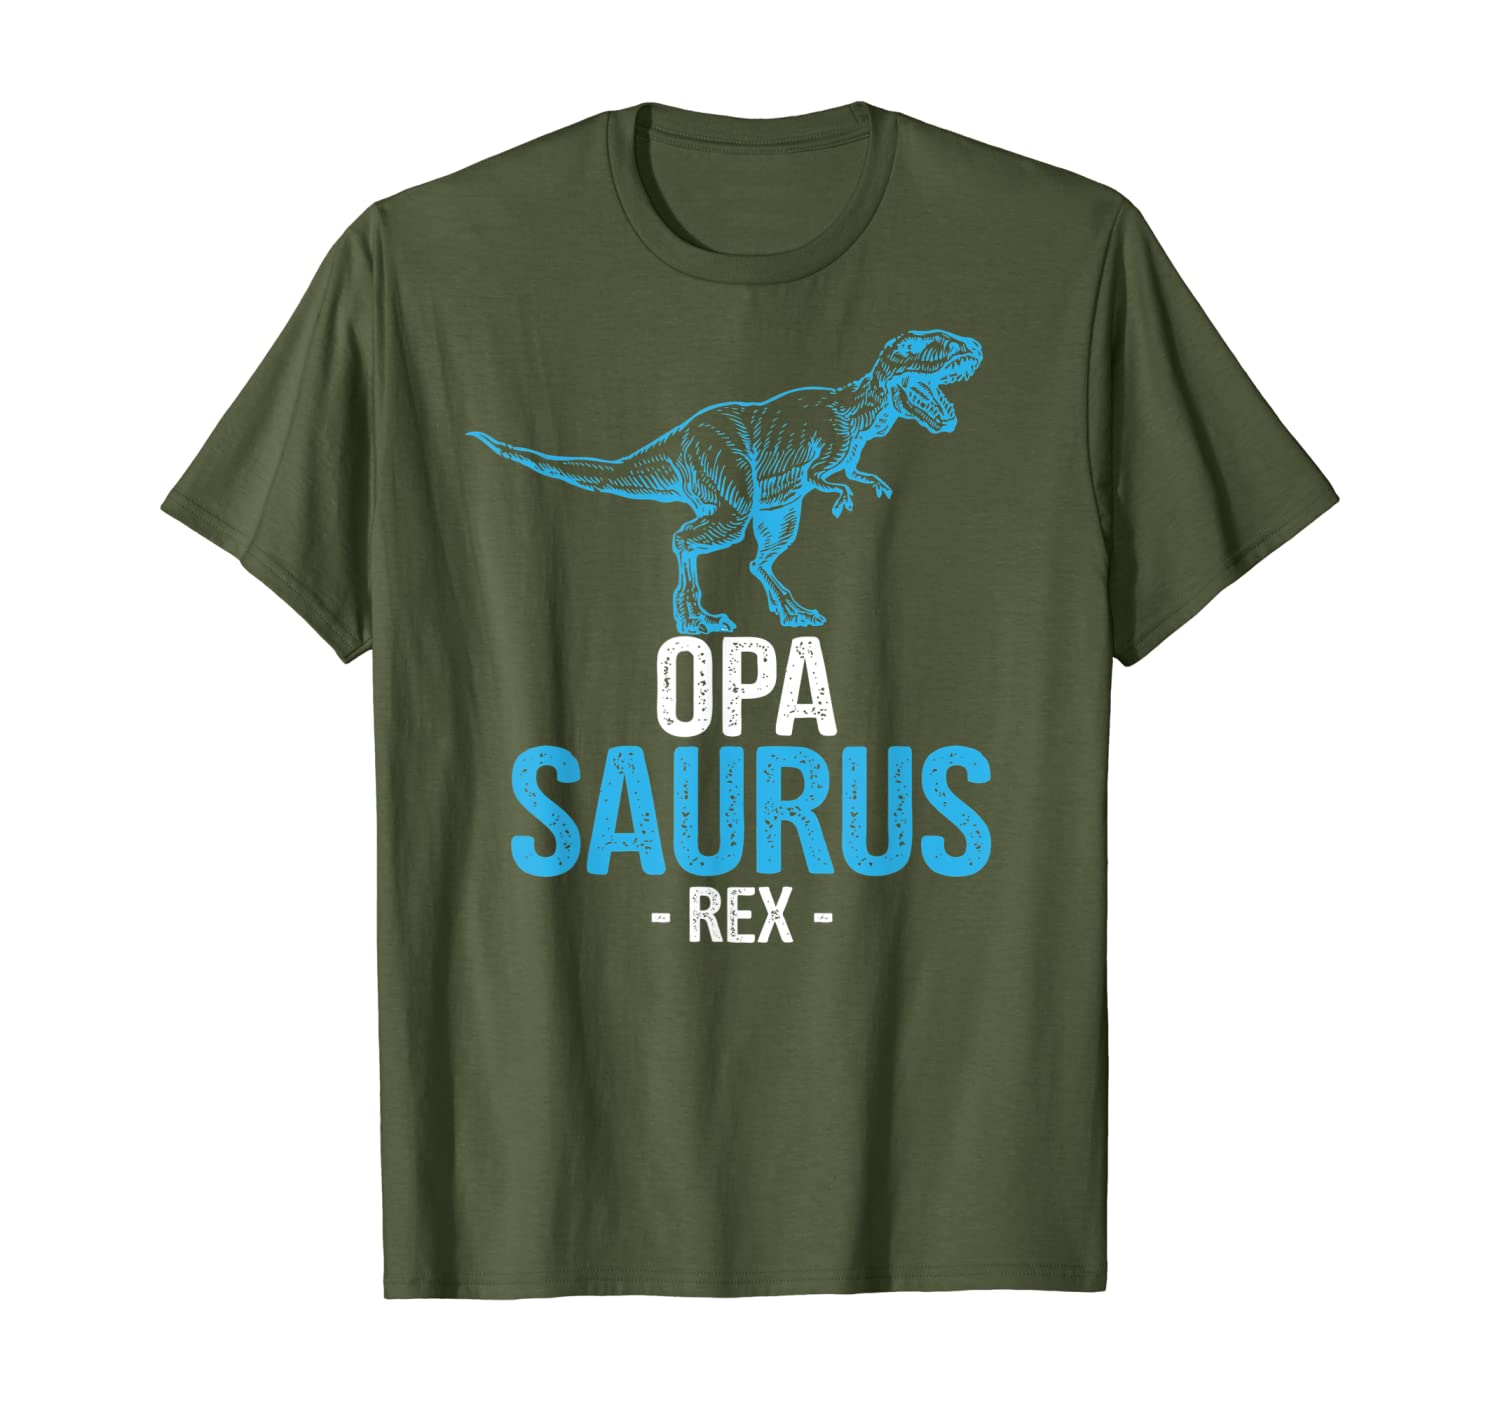 Funny Fathers Day Gift For Grandpa Opa Saurus Rex T-shirt - Dad Tshirt Up To 5xl